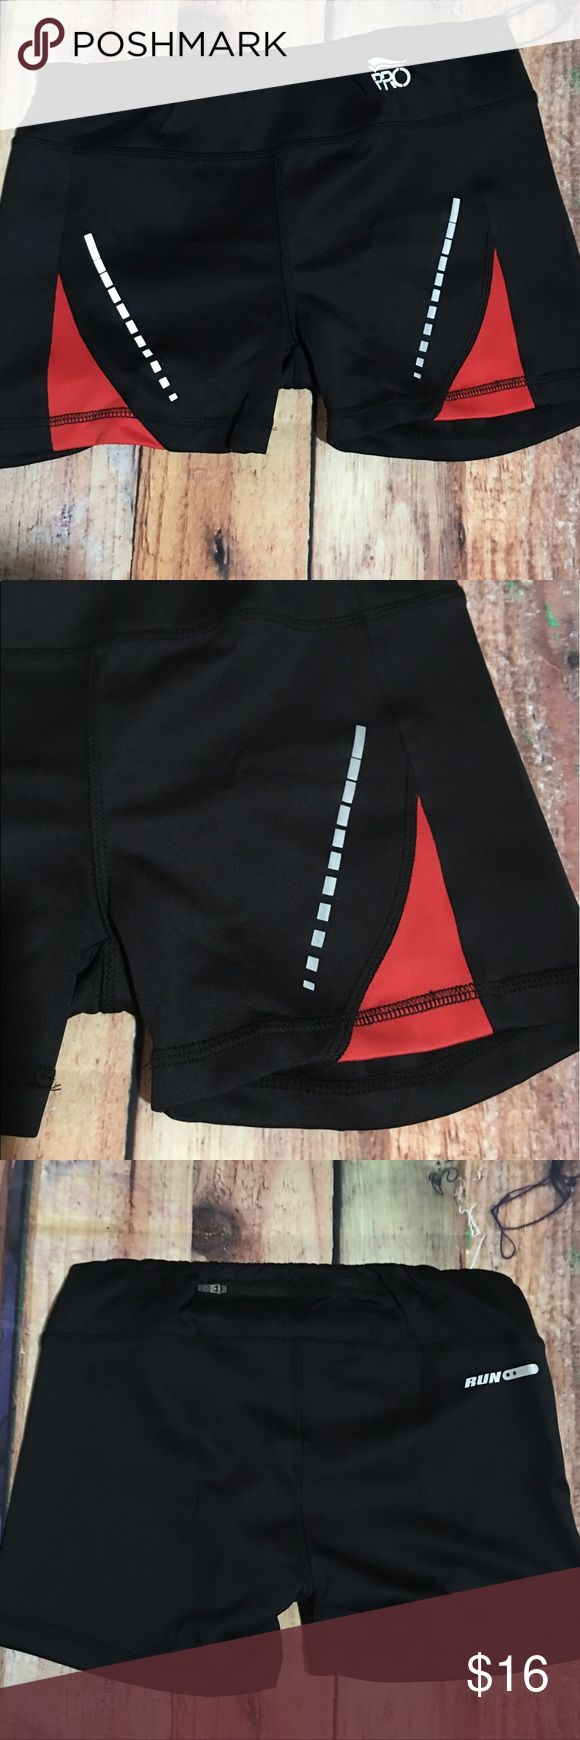 Crivit Pro Running Shorts Women's Small New Crivit Pro Running Shorts Women's Small 36-38 New With Tags msrp $24.99 Black with some red on sides and  silver reflector markings small zippered pocket on back waistband 86% polyester & 12% spandex rise 8 inches inseam 3 inches Crivit Pro Shorts